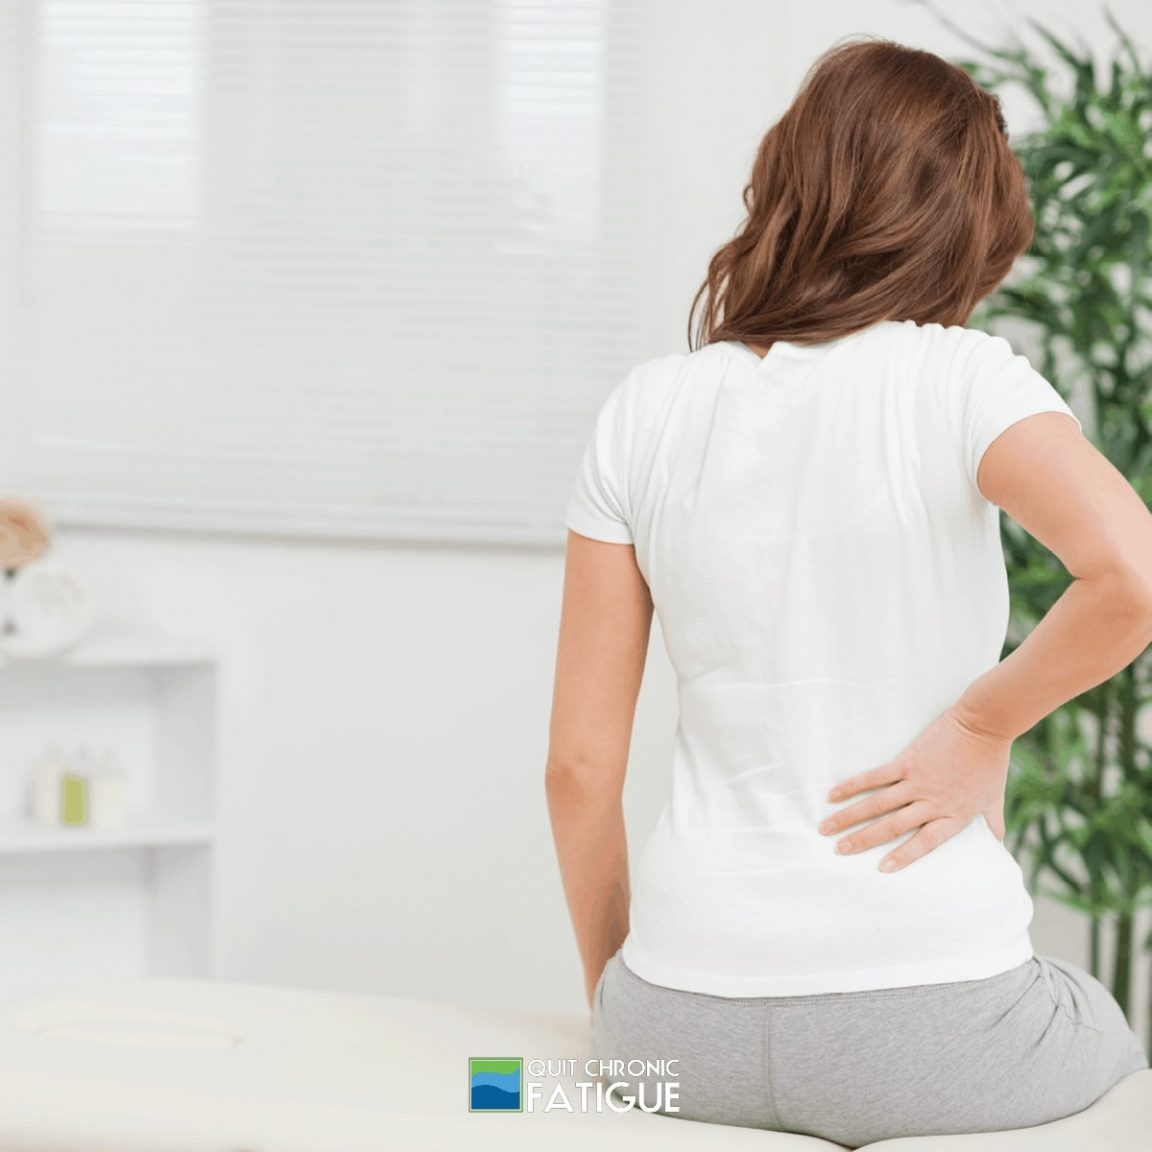 Easy Tips That Will Help You Be Successful While Living with Fibromyalgia